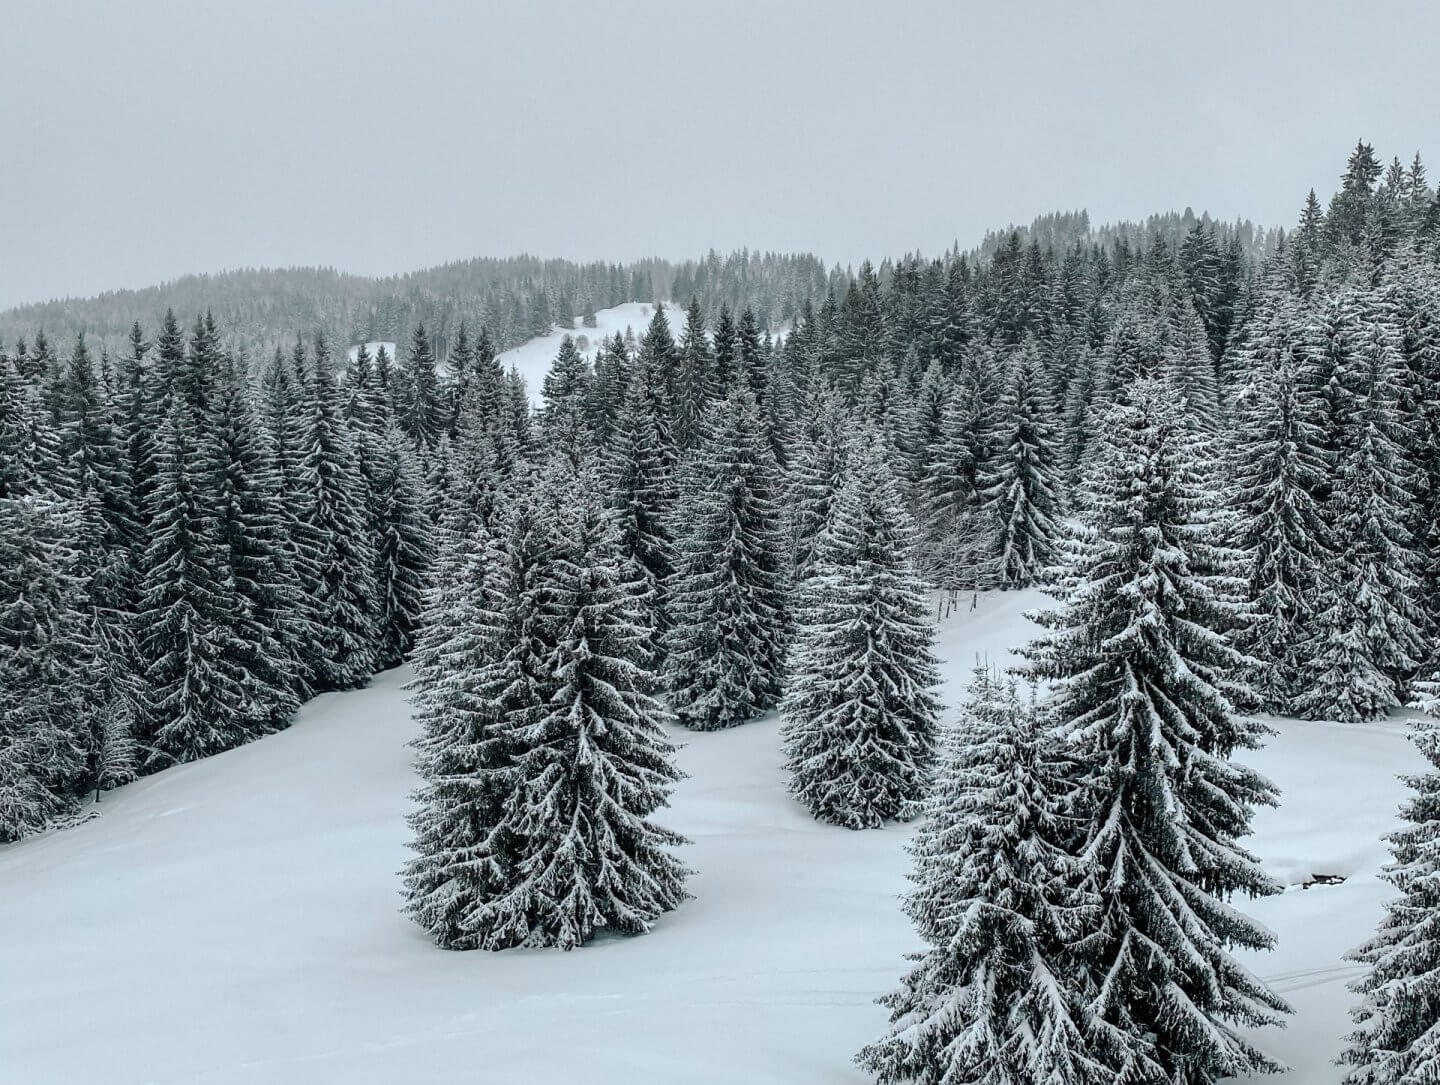 image of snow covered trees in Les Gets in the French Alps, France